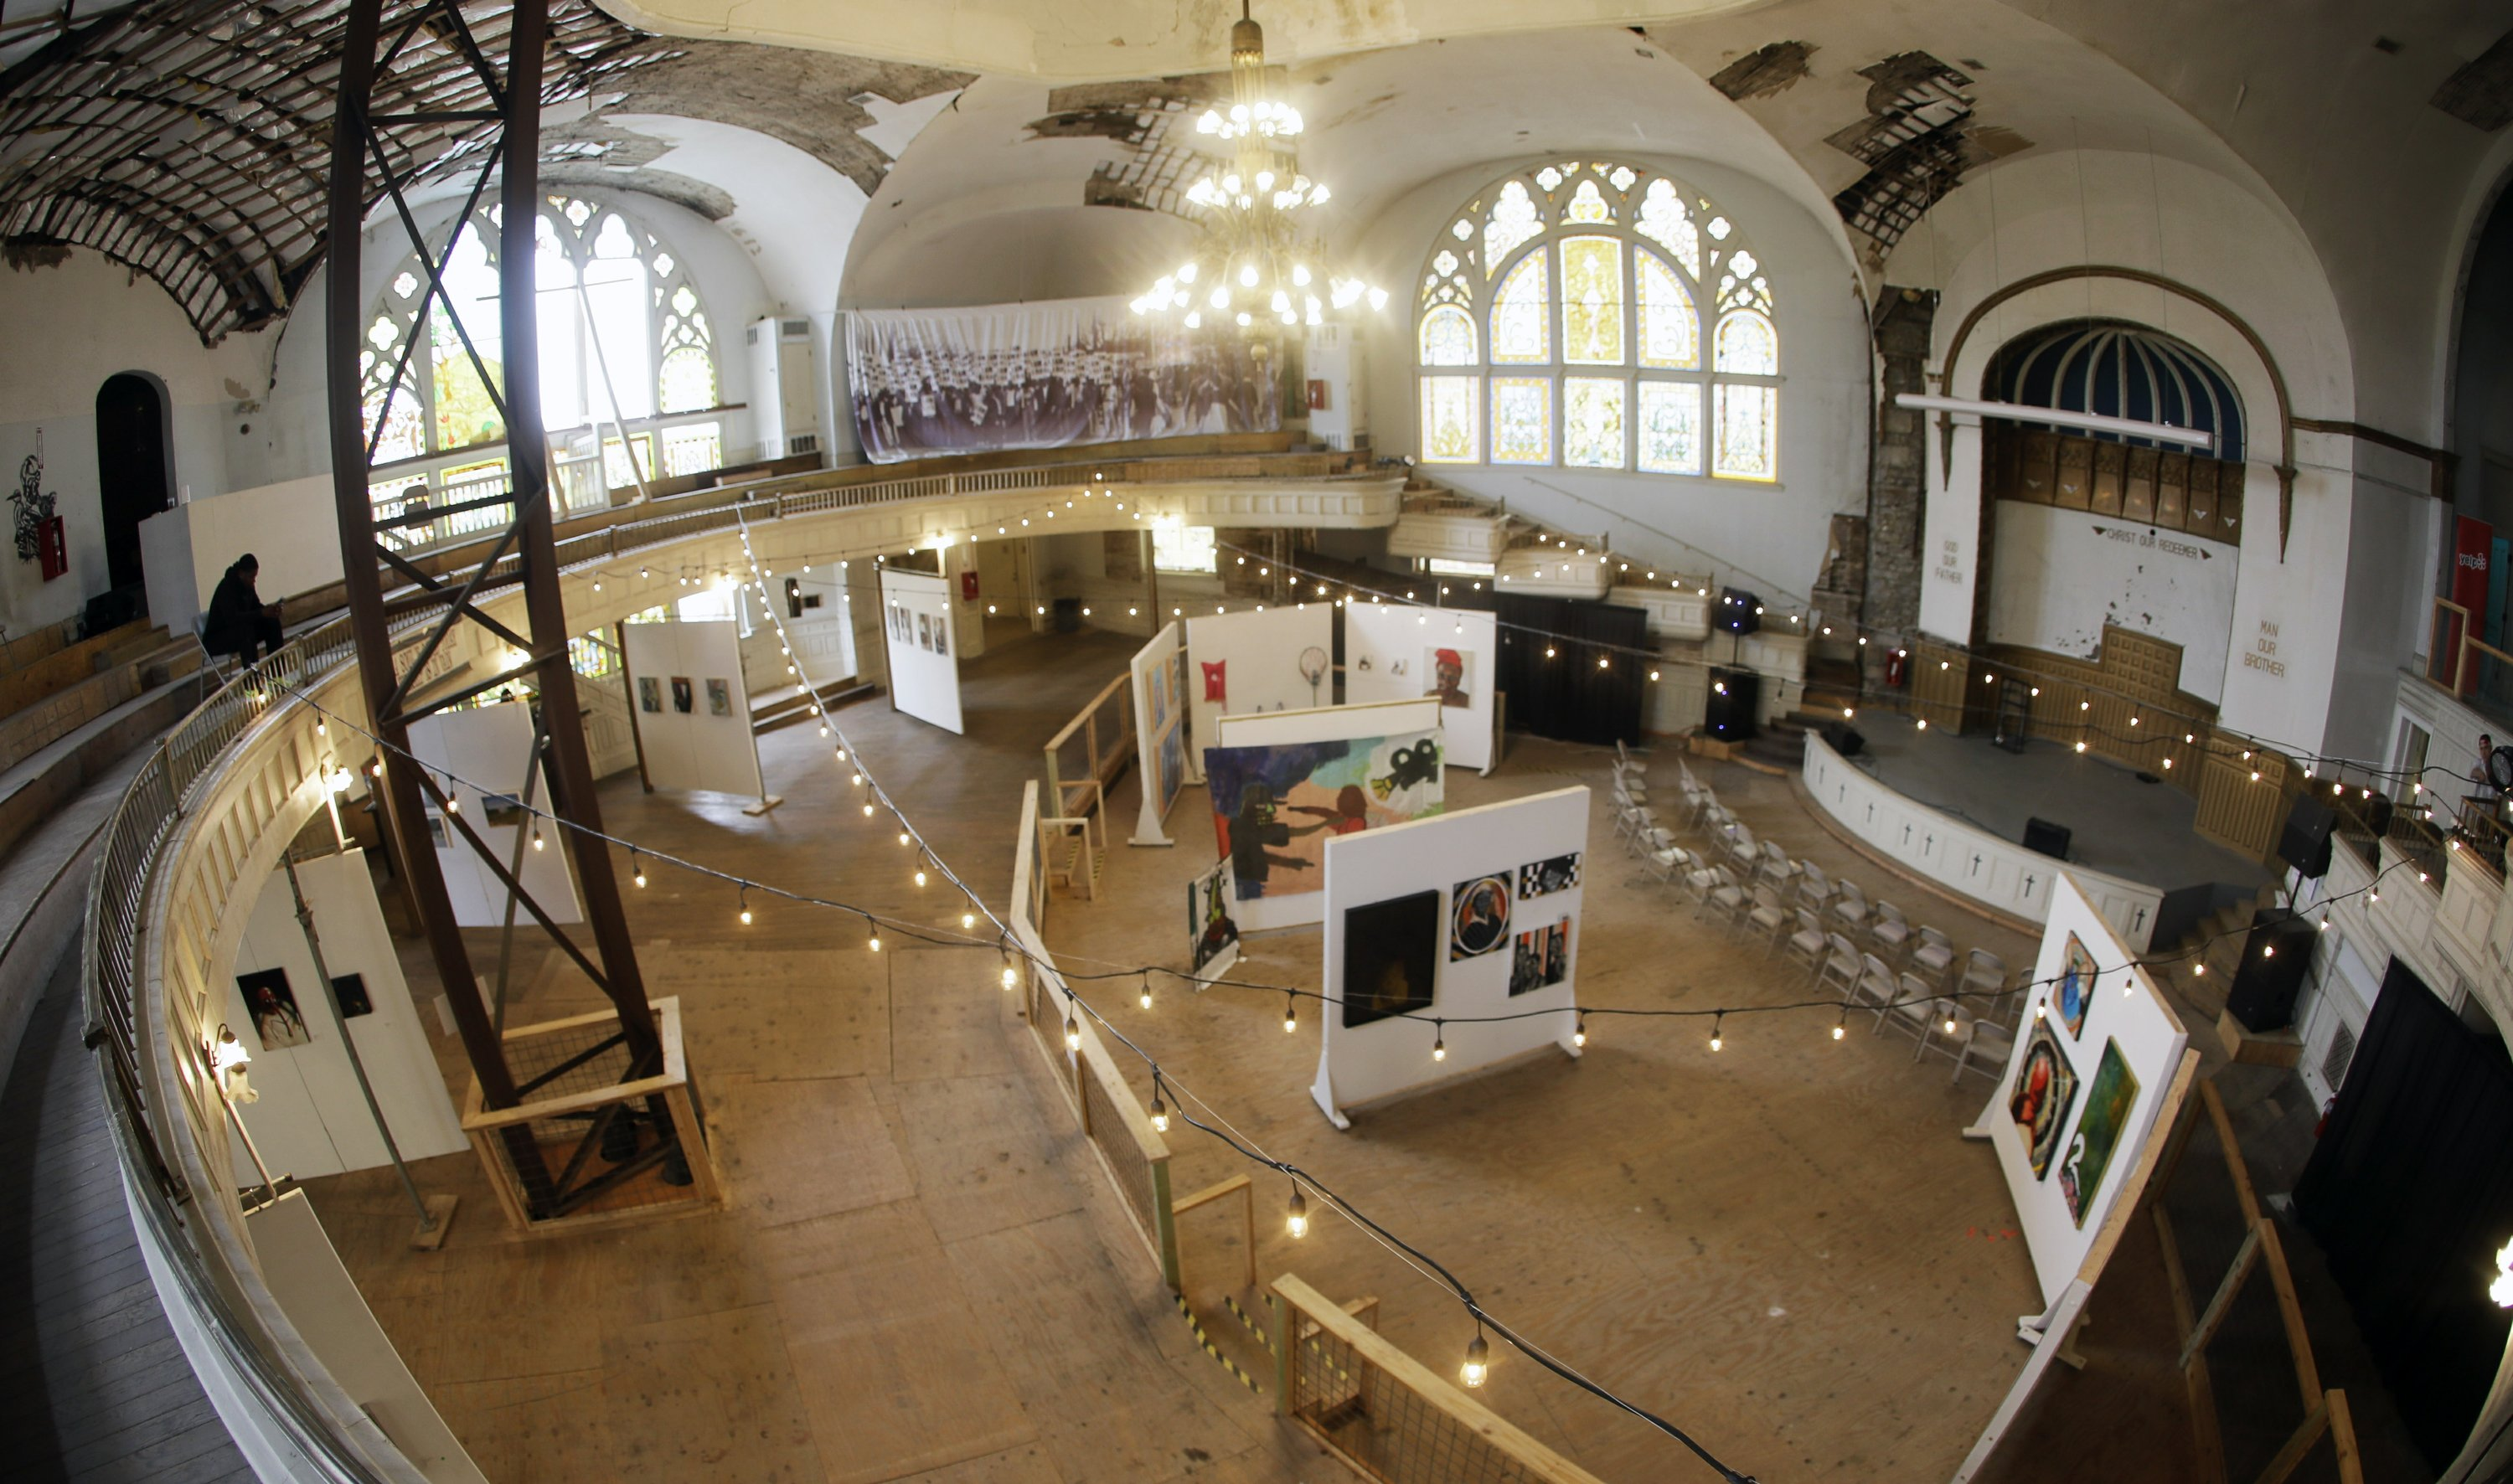 Neglected US civil rights church is returned to its glory